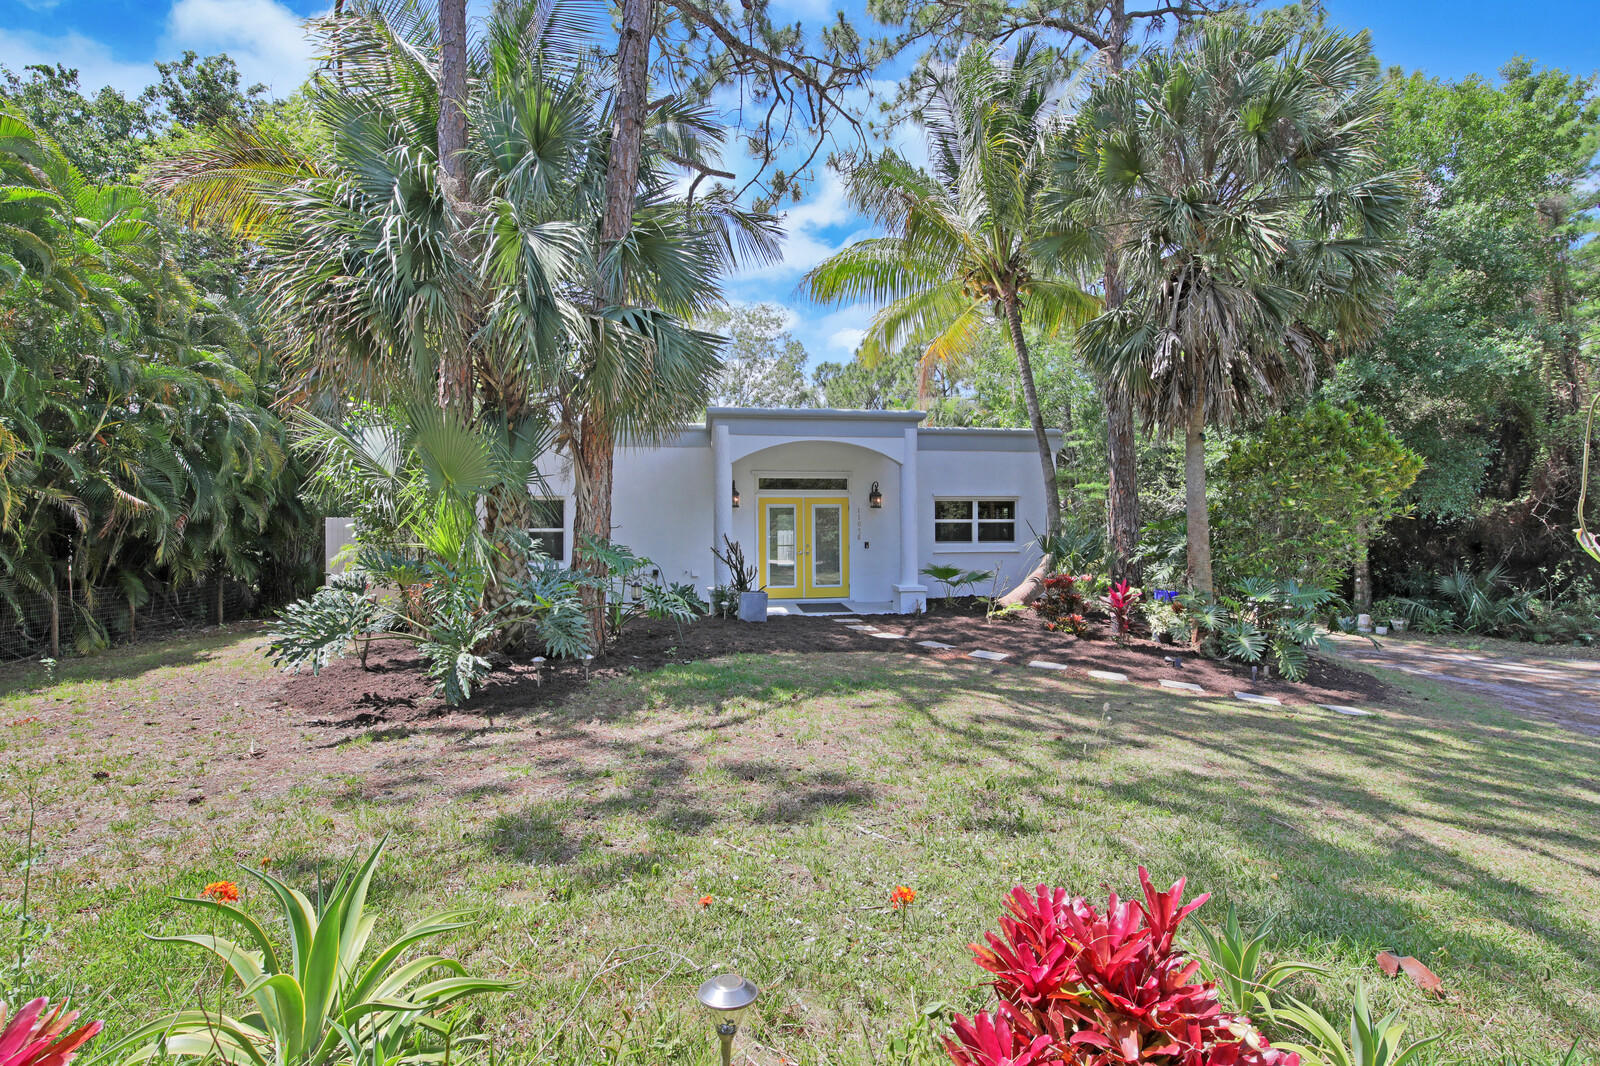 Serene and private retreat in Jupiter Farms with its own reflection pond. This 2/2 CBS home has hurricane impact glass windows throughout. French doors lead out to the screened lanai overlooking a fenced in free form pool. Less than 10 minutes from Riverbend Park and a short drive to shops, restaurants, and the beach.